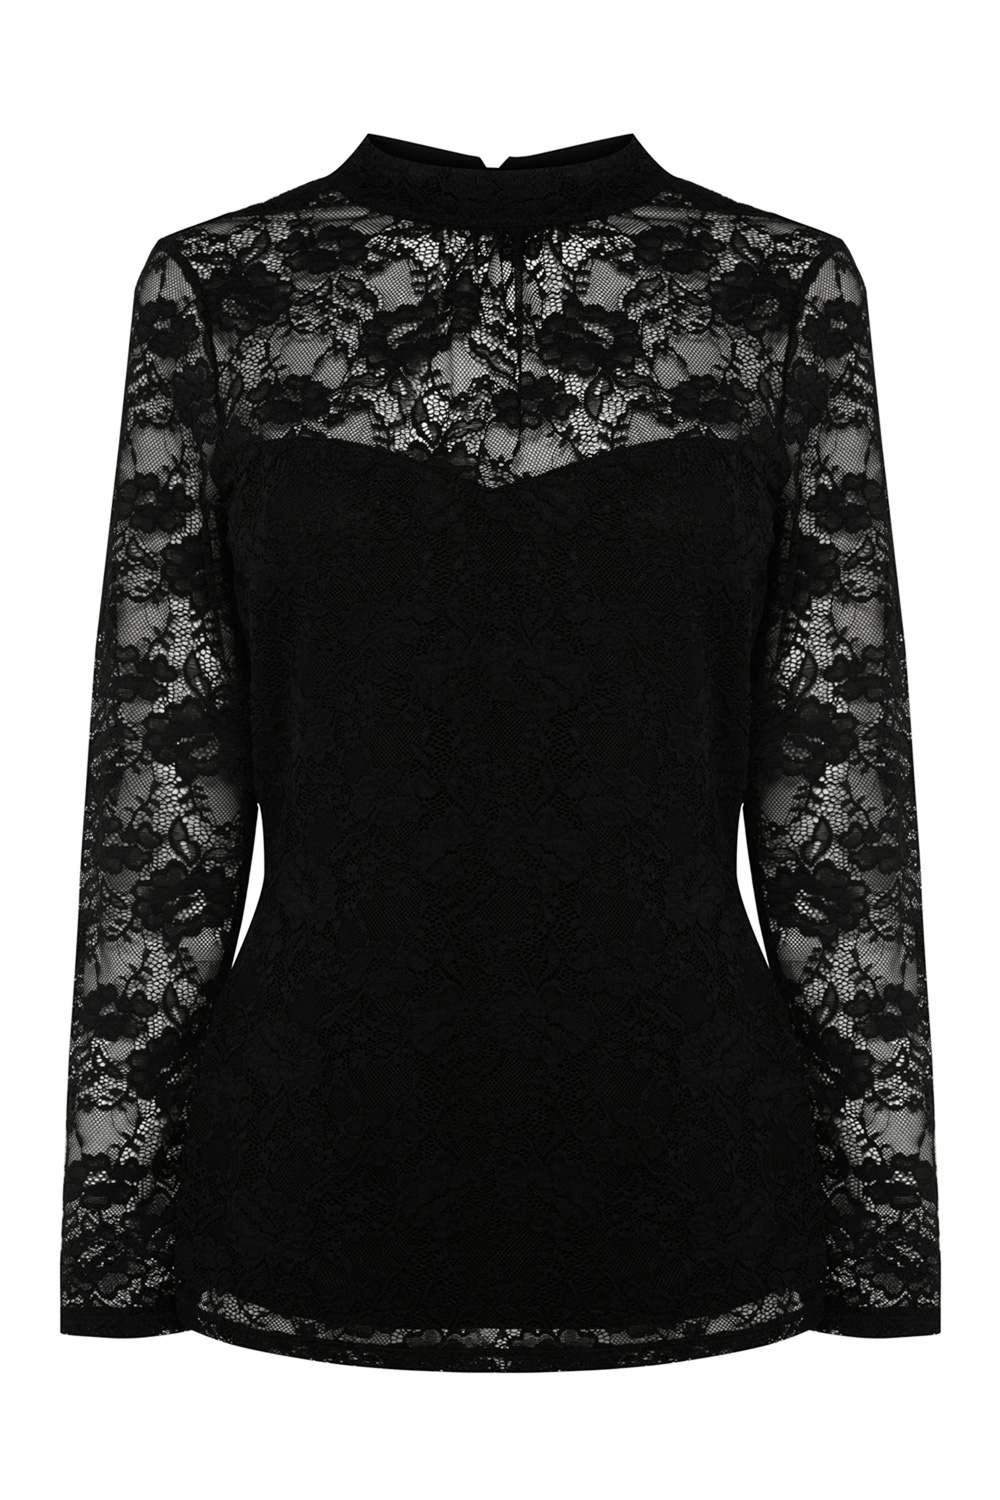 All Sale | Black HEATHER LACE TOP  | Coast Stores Limited